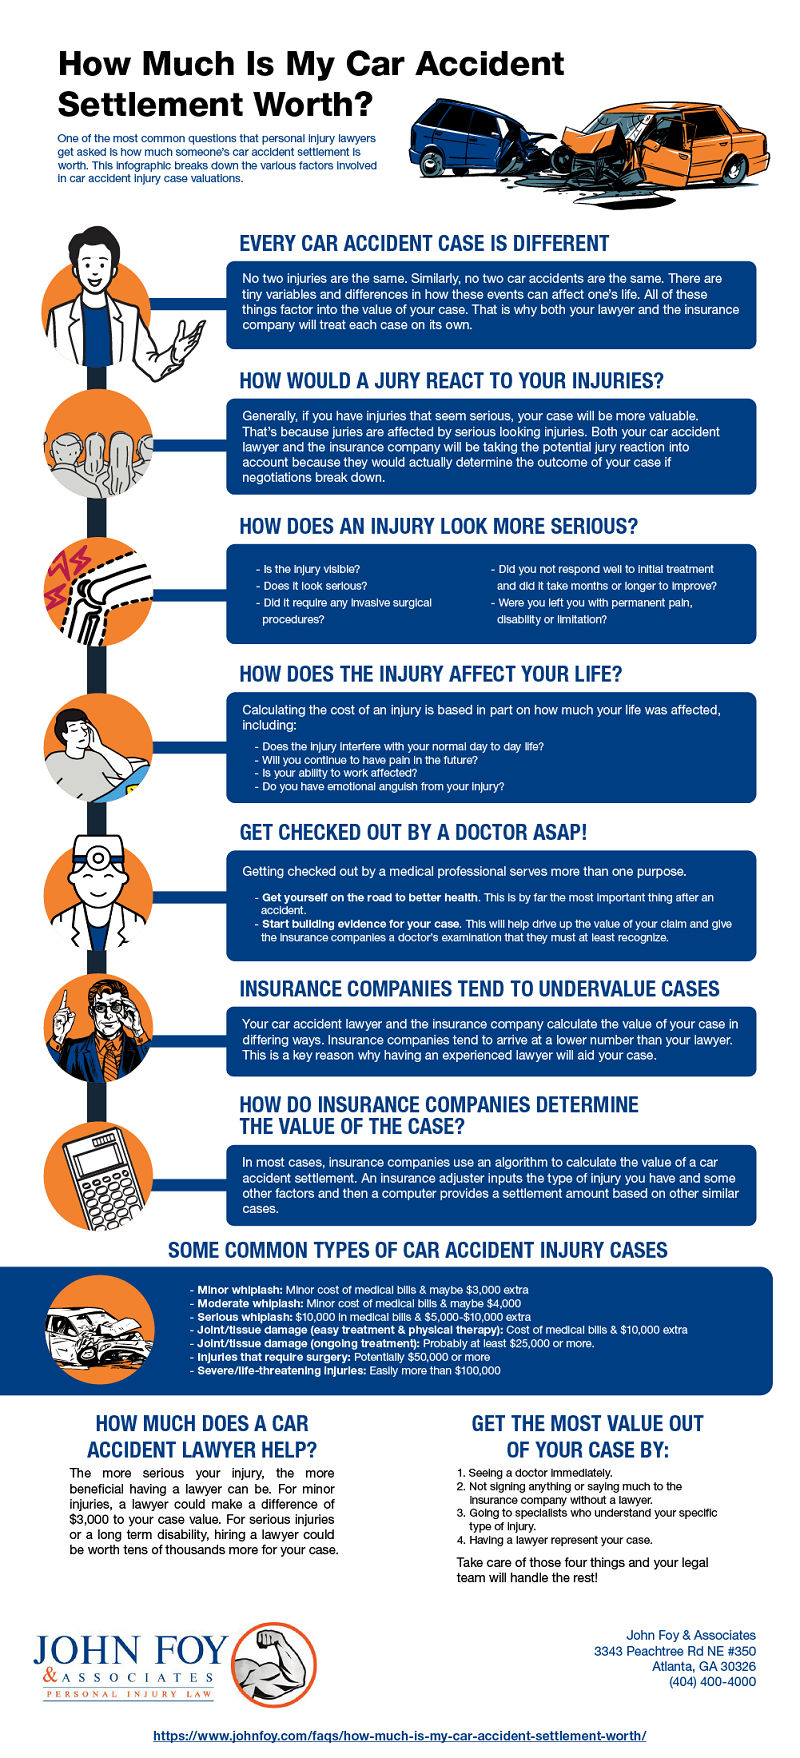 how much do clients pay their attorneys for personal injury cases if they lose